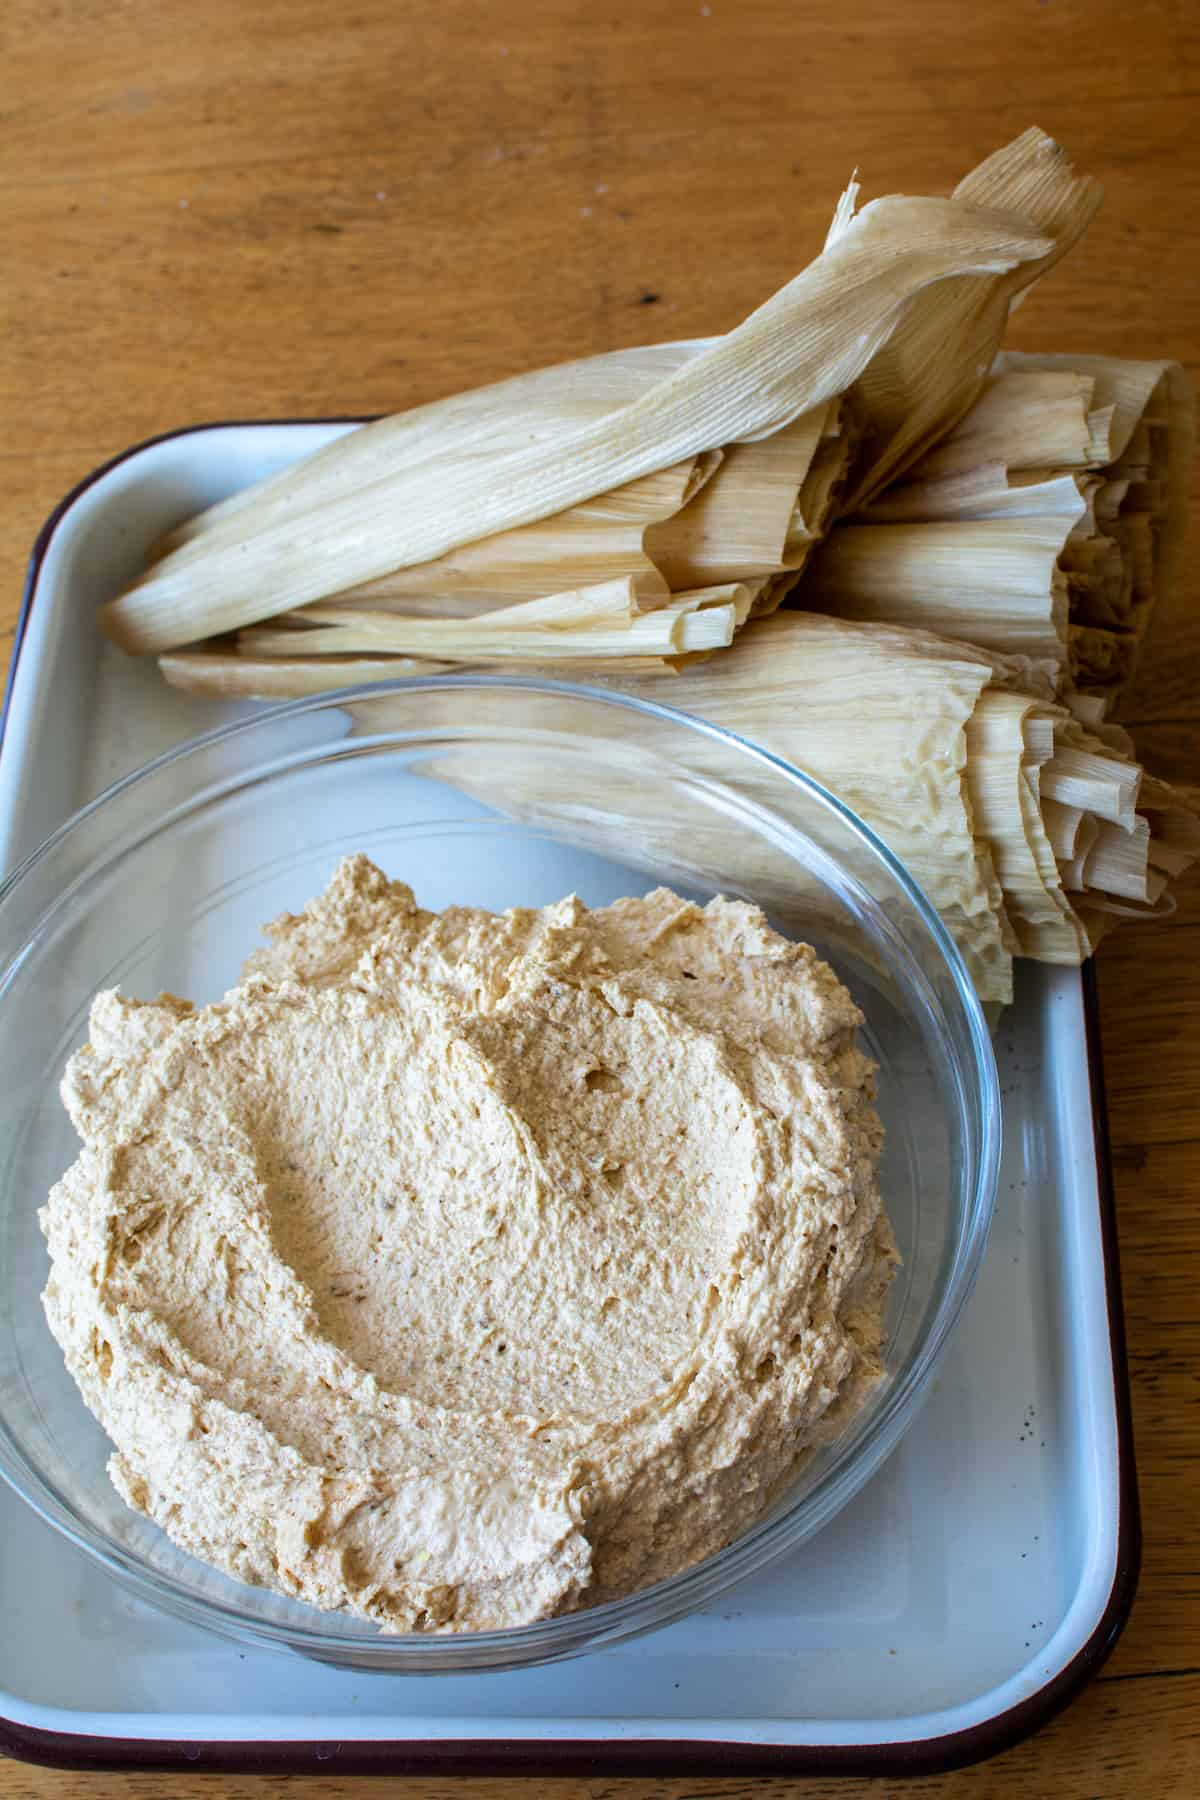 A glass bowl filled with masa dough sitting in a white tray with a stack of soaked corn husks behind it.